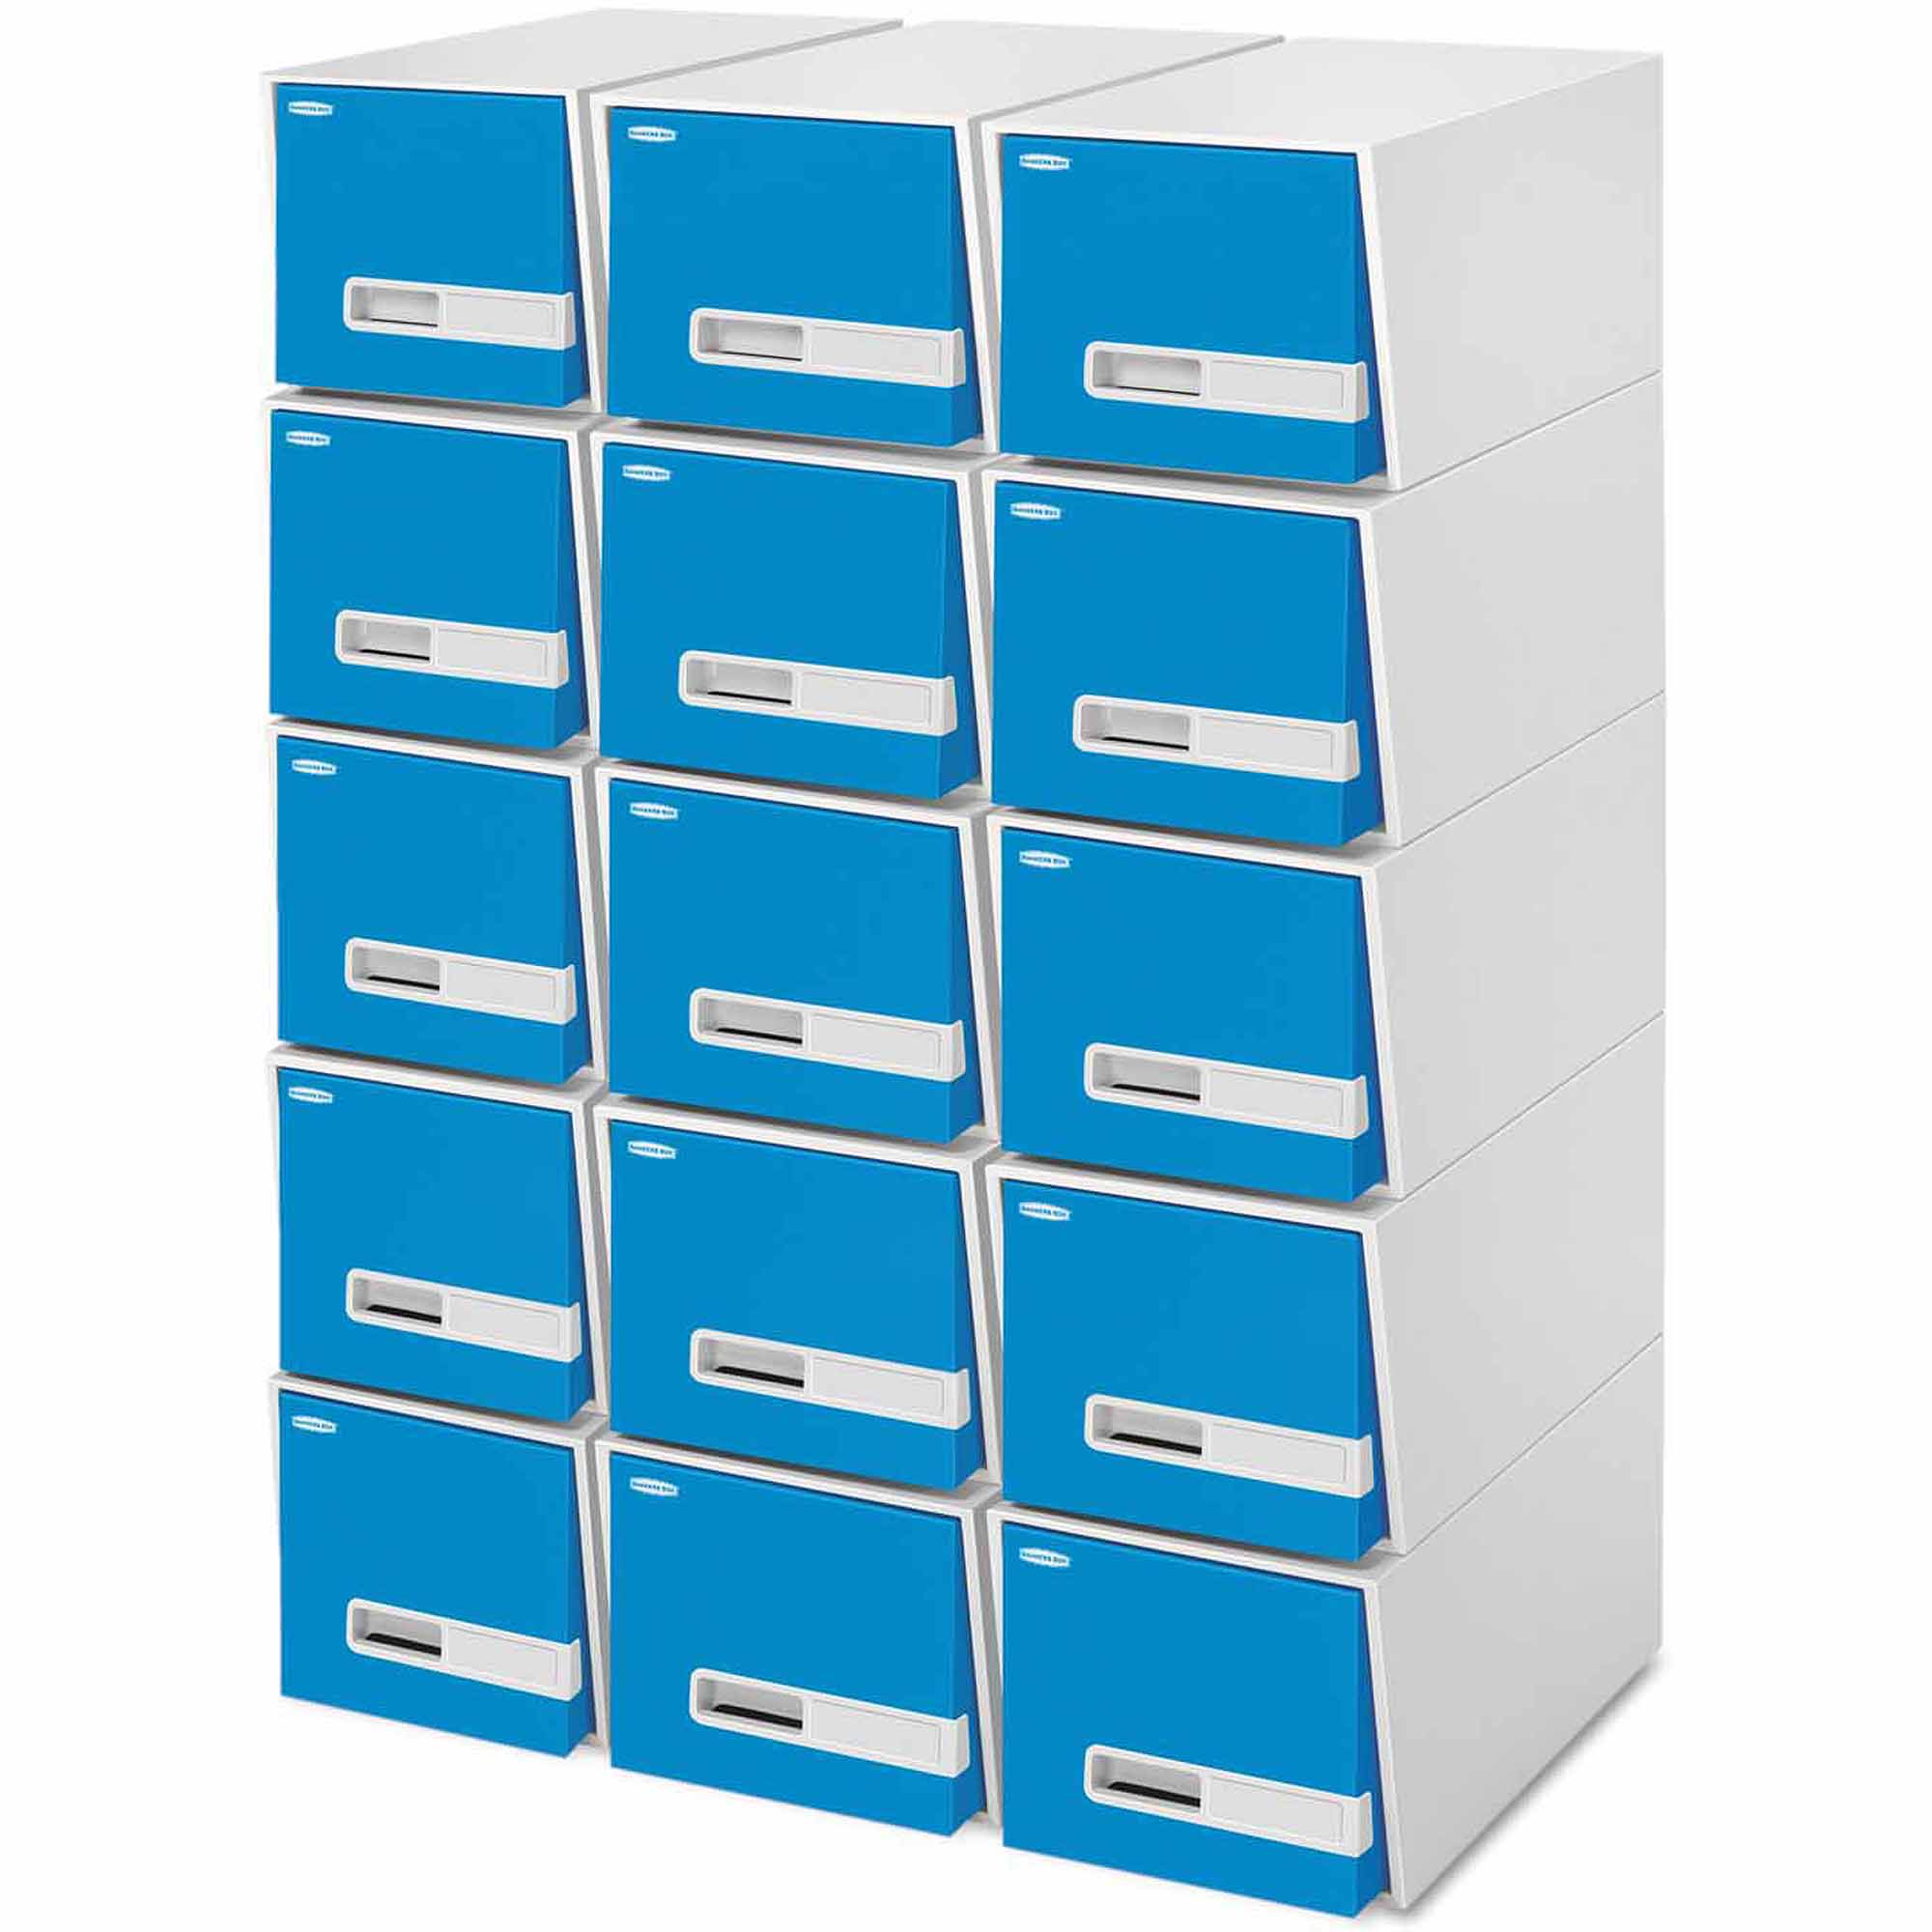 """Bankers Box Stor/Drawer Premier Extra Space Savings Storage Drawers, 24"""" Letter, Blue, 5-Count"""